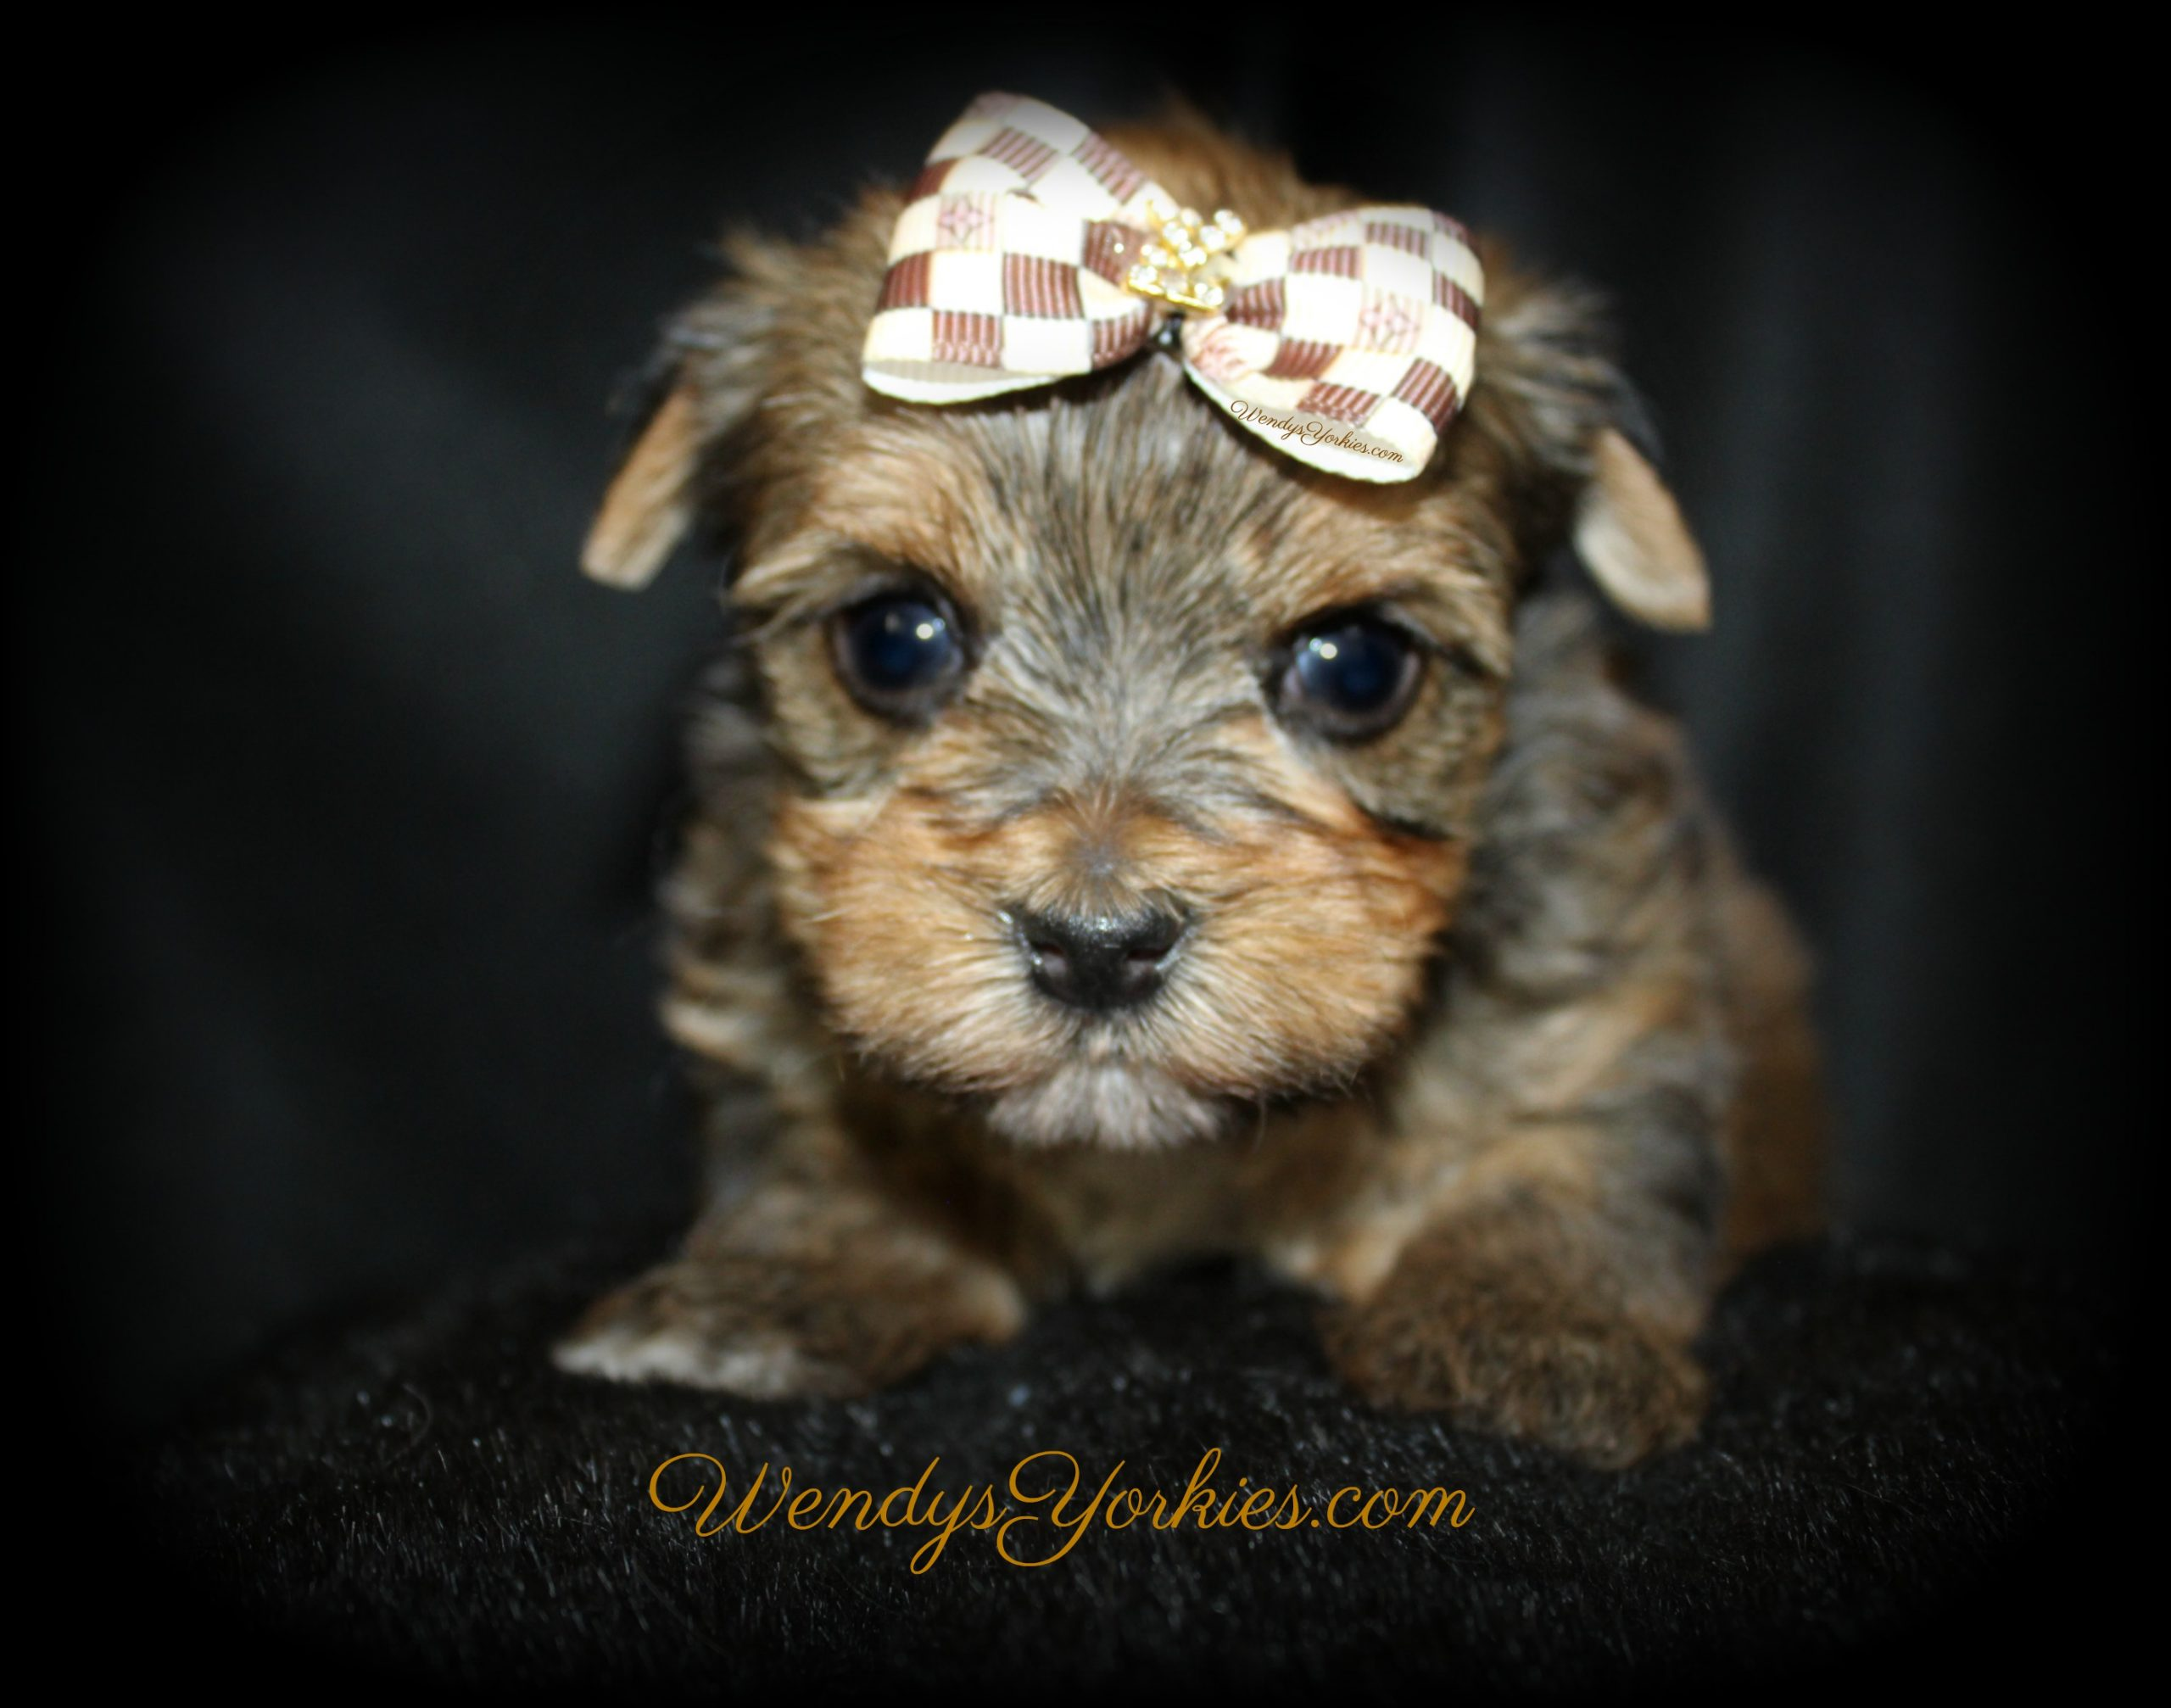 Male Yorkie puppy for sale in Texas, Lela m3, WendysYorkies.com